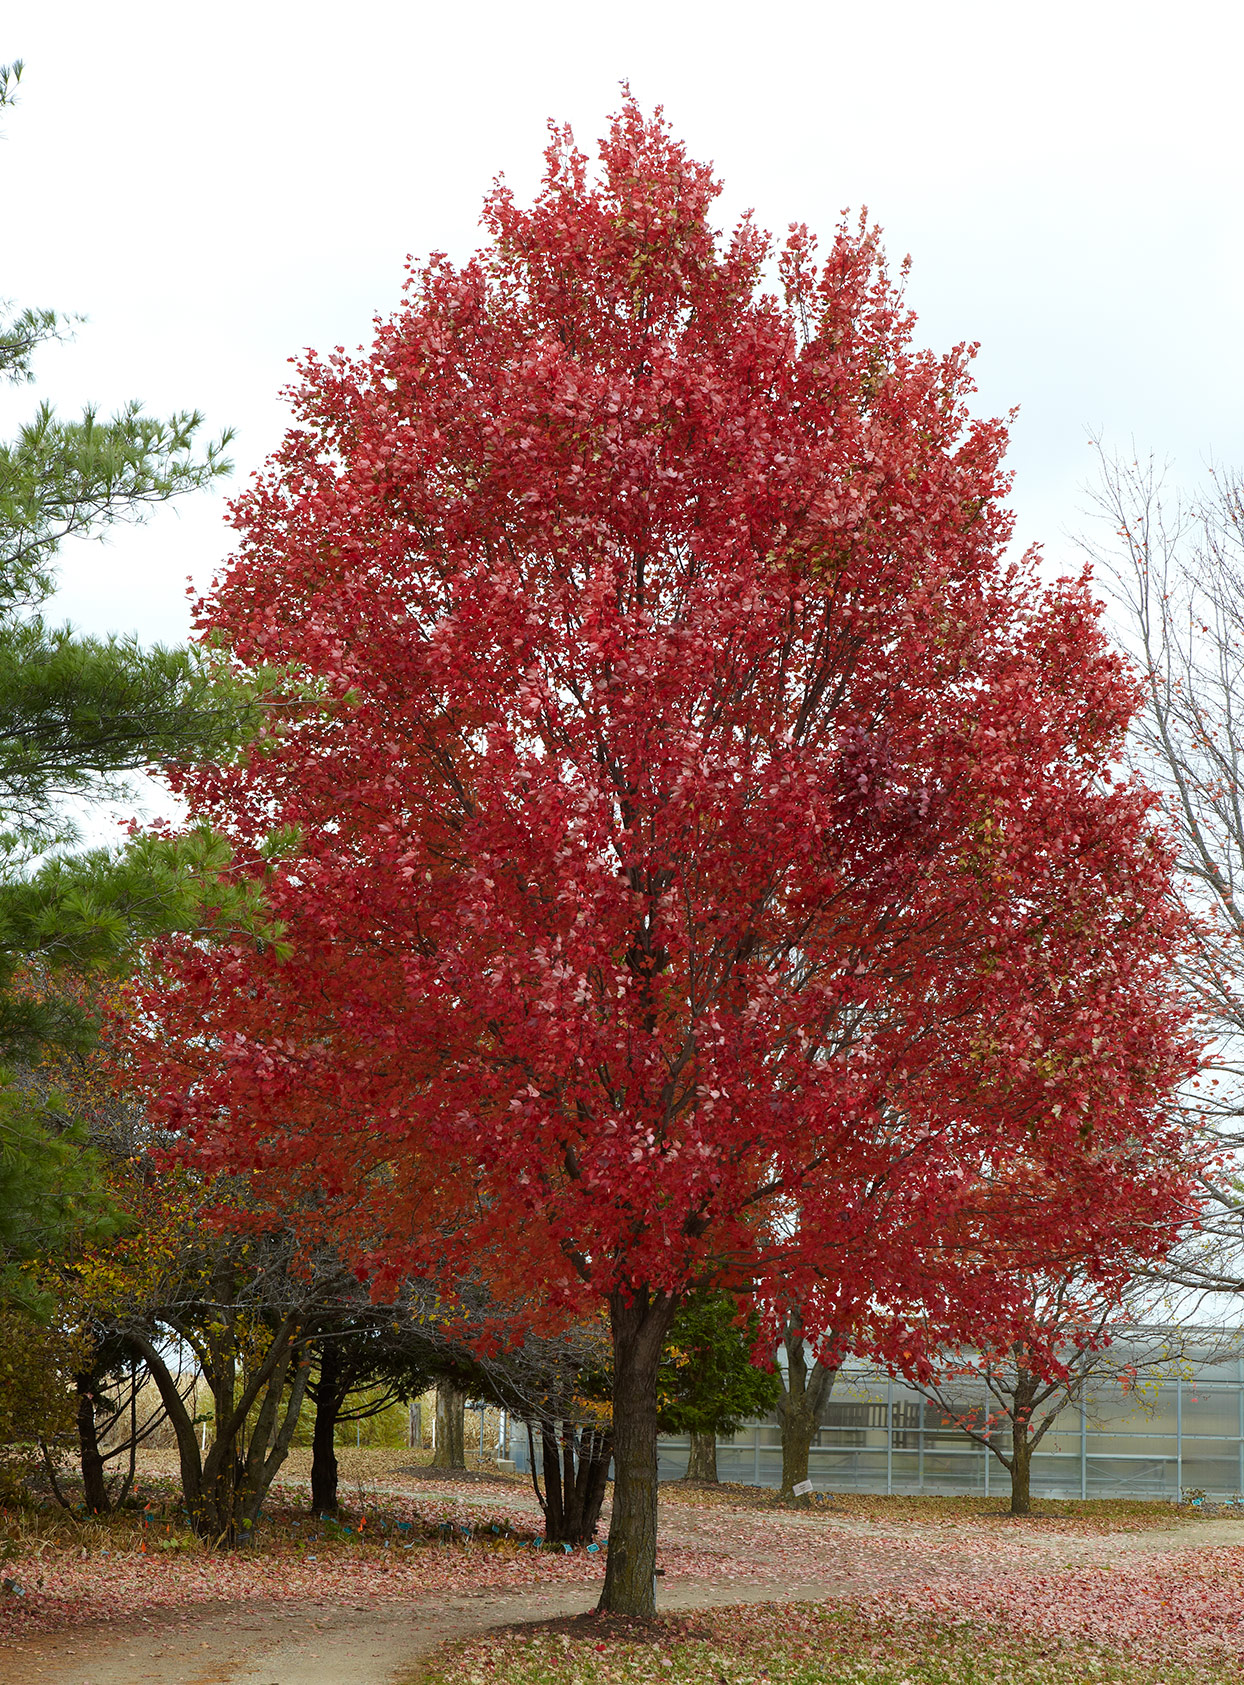 How Long A Newly Planted Red Maple Takes To Grow To Full Size